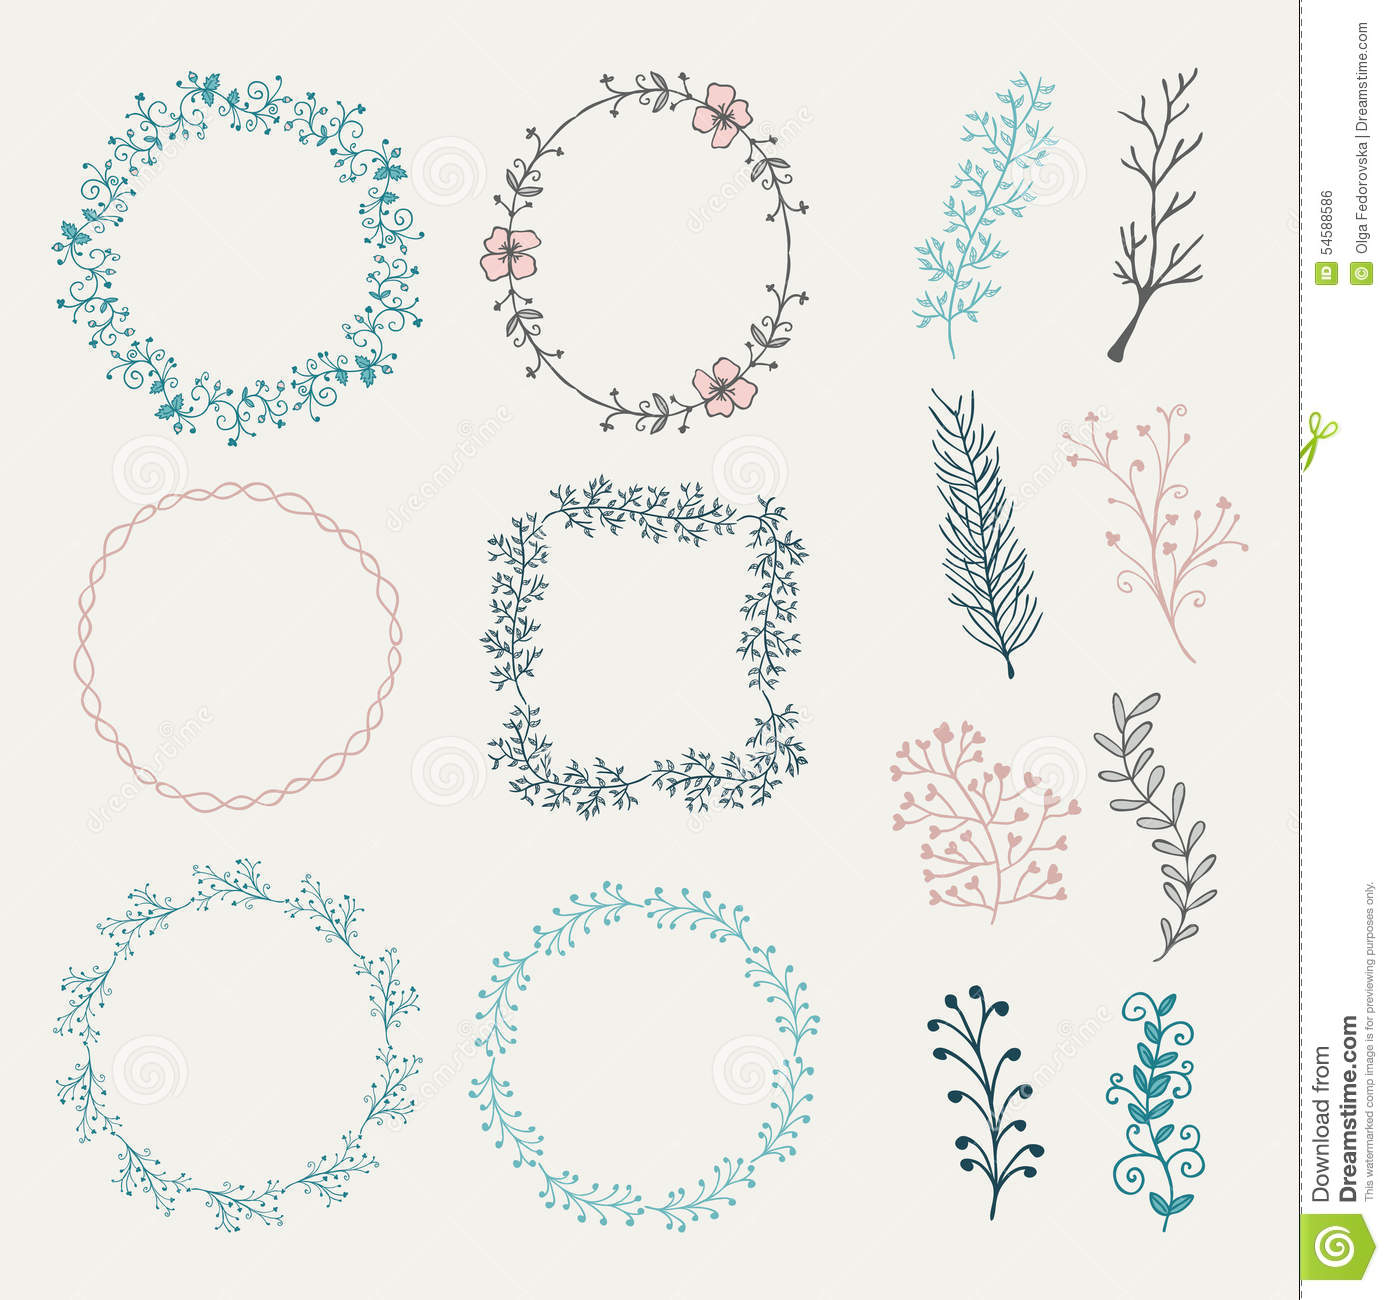 Colorful Hand Sketched Frames Borders Design Stock Vector